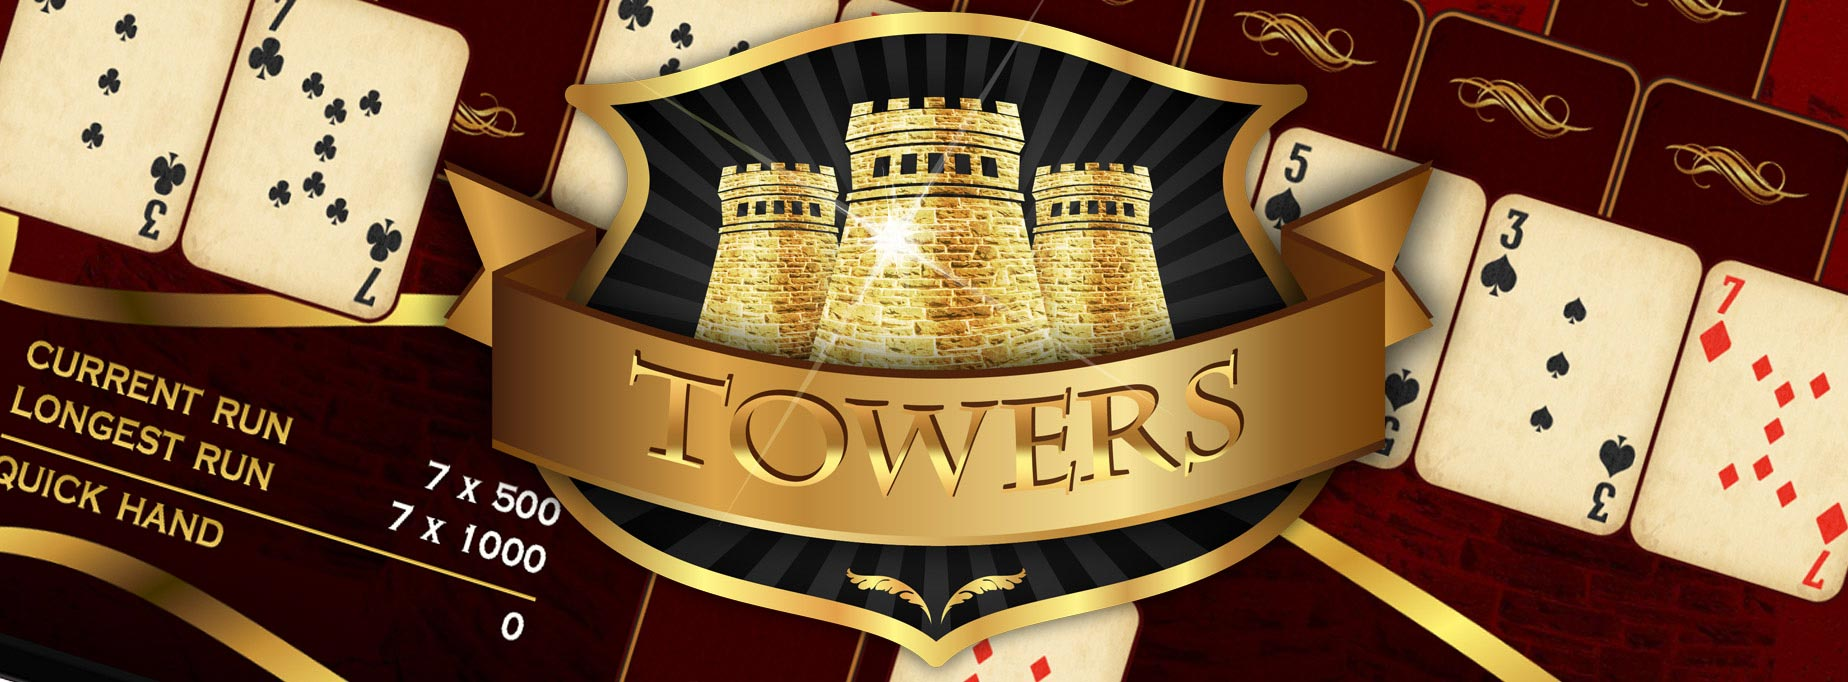 towers tripeaks pyramid solitaire game